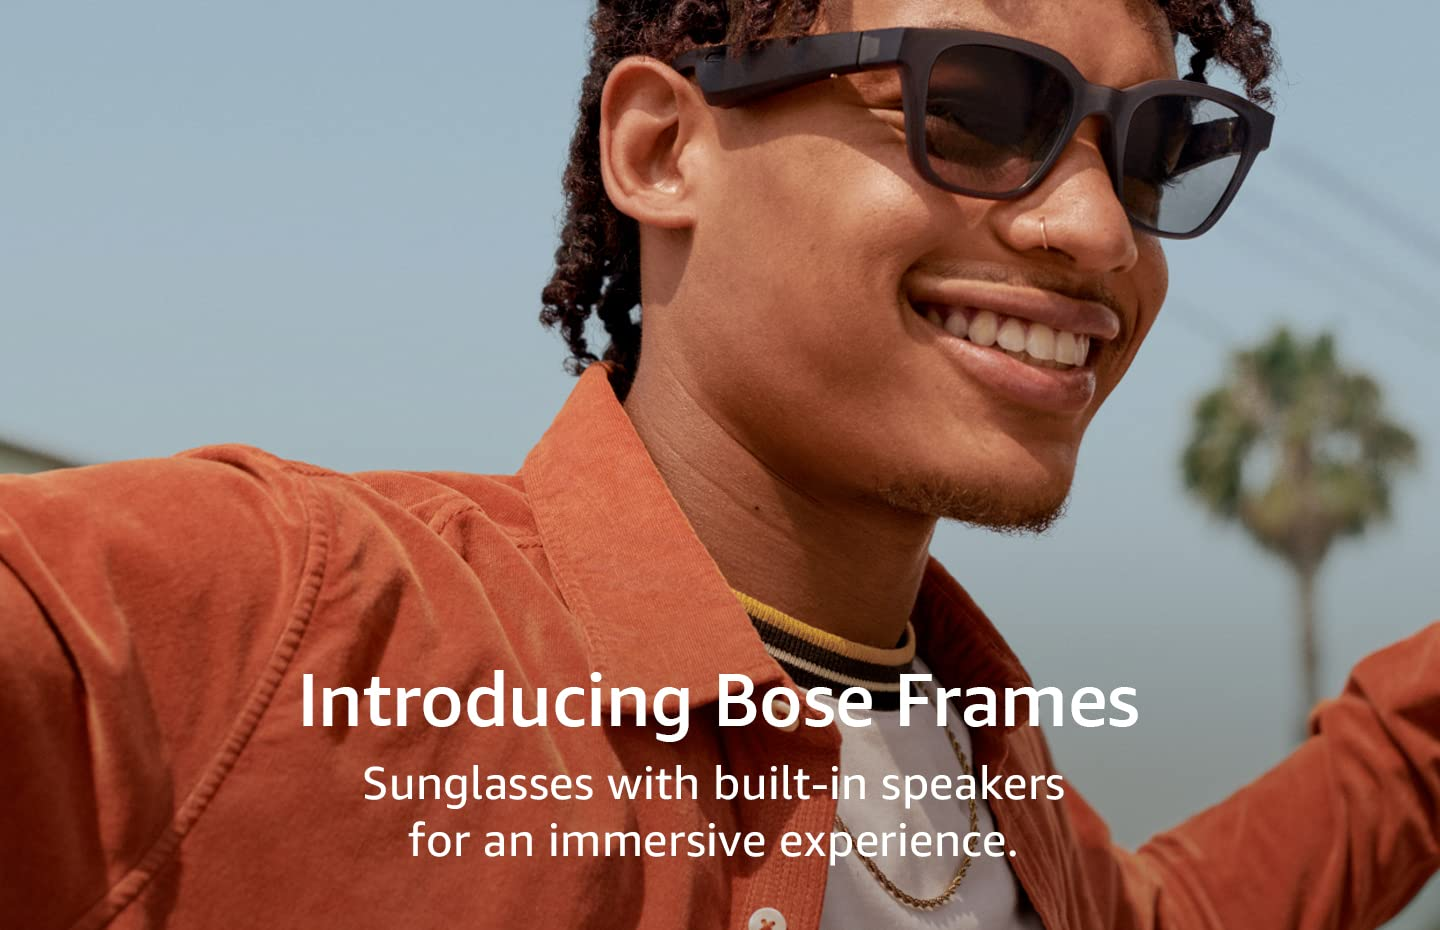 Introducing Bose Frames